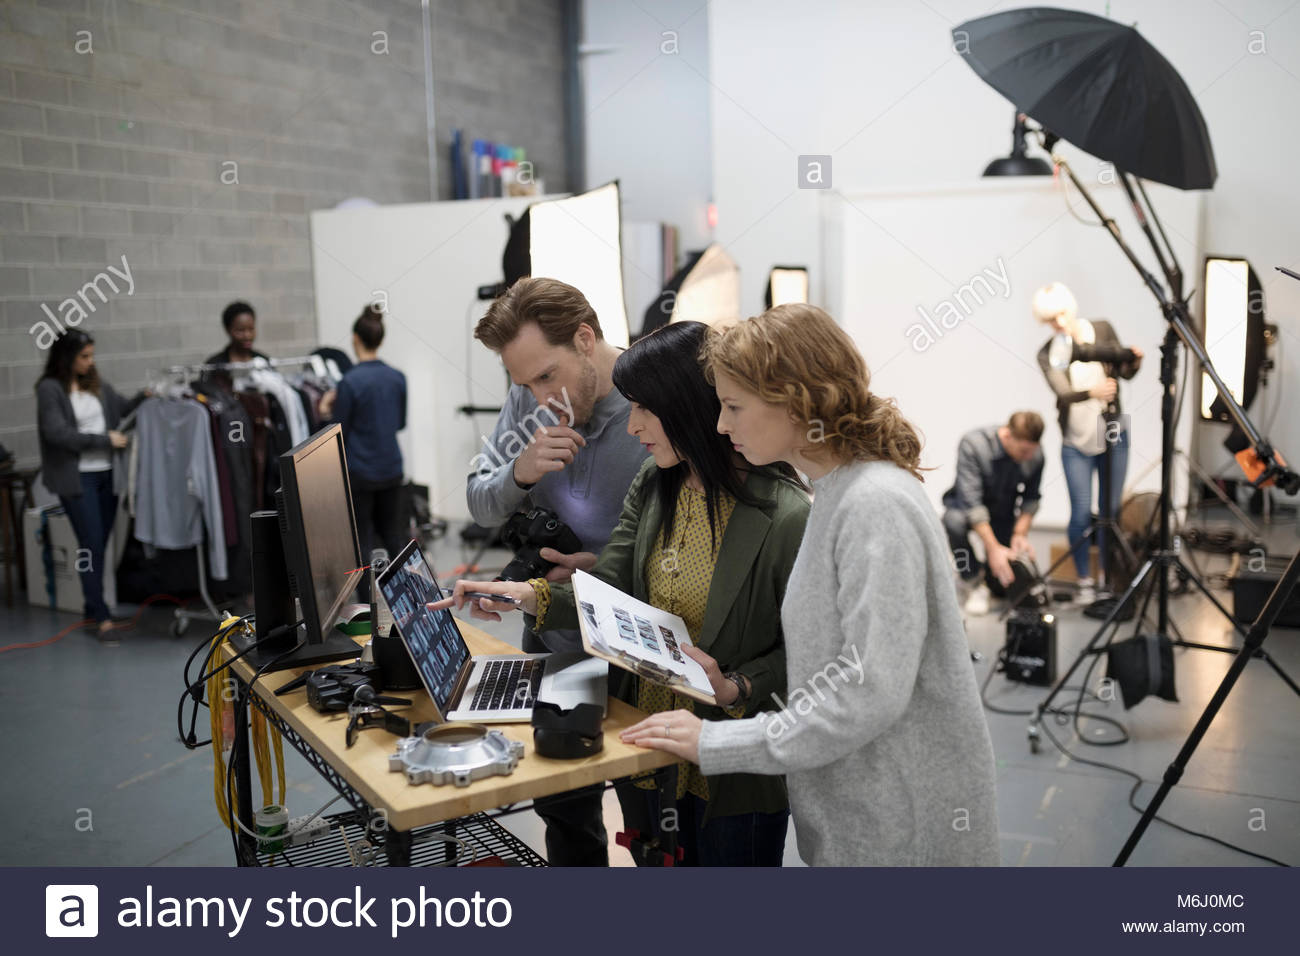 Photographer and production team preparing photo shoot in studio - Stock Image